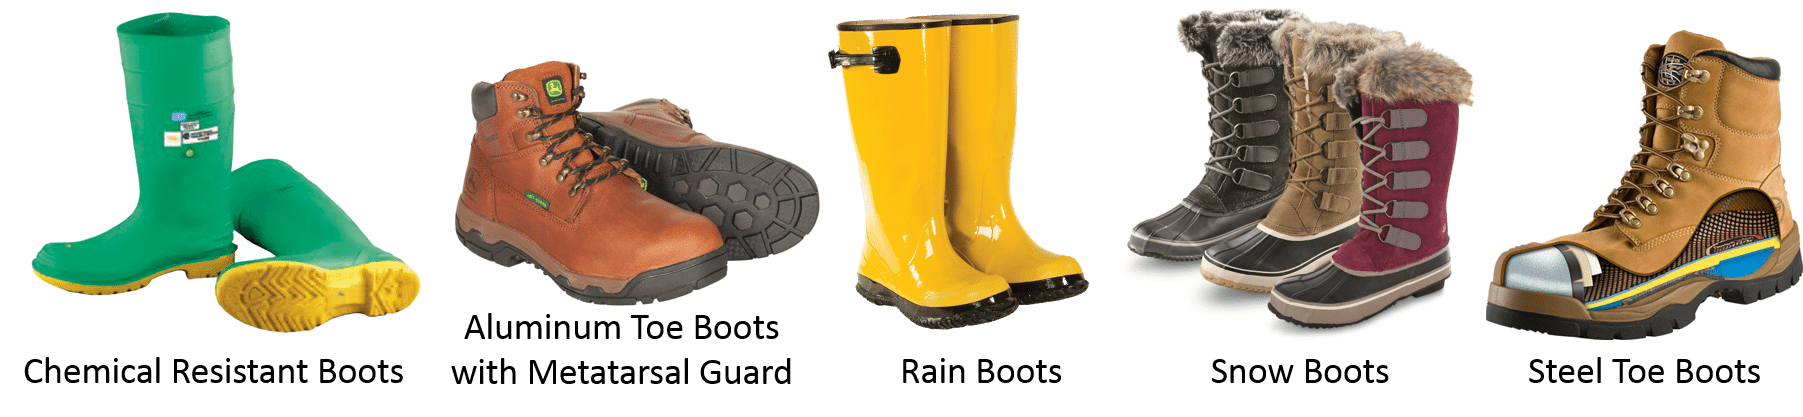 Examples of different shoes used for personal protection